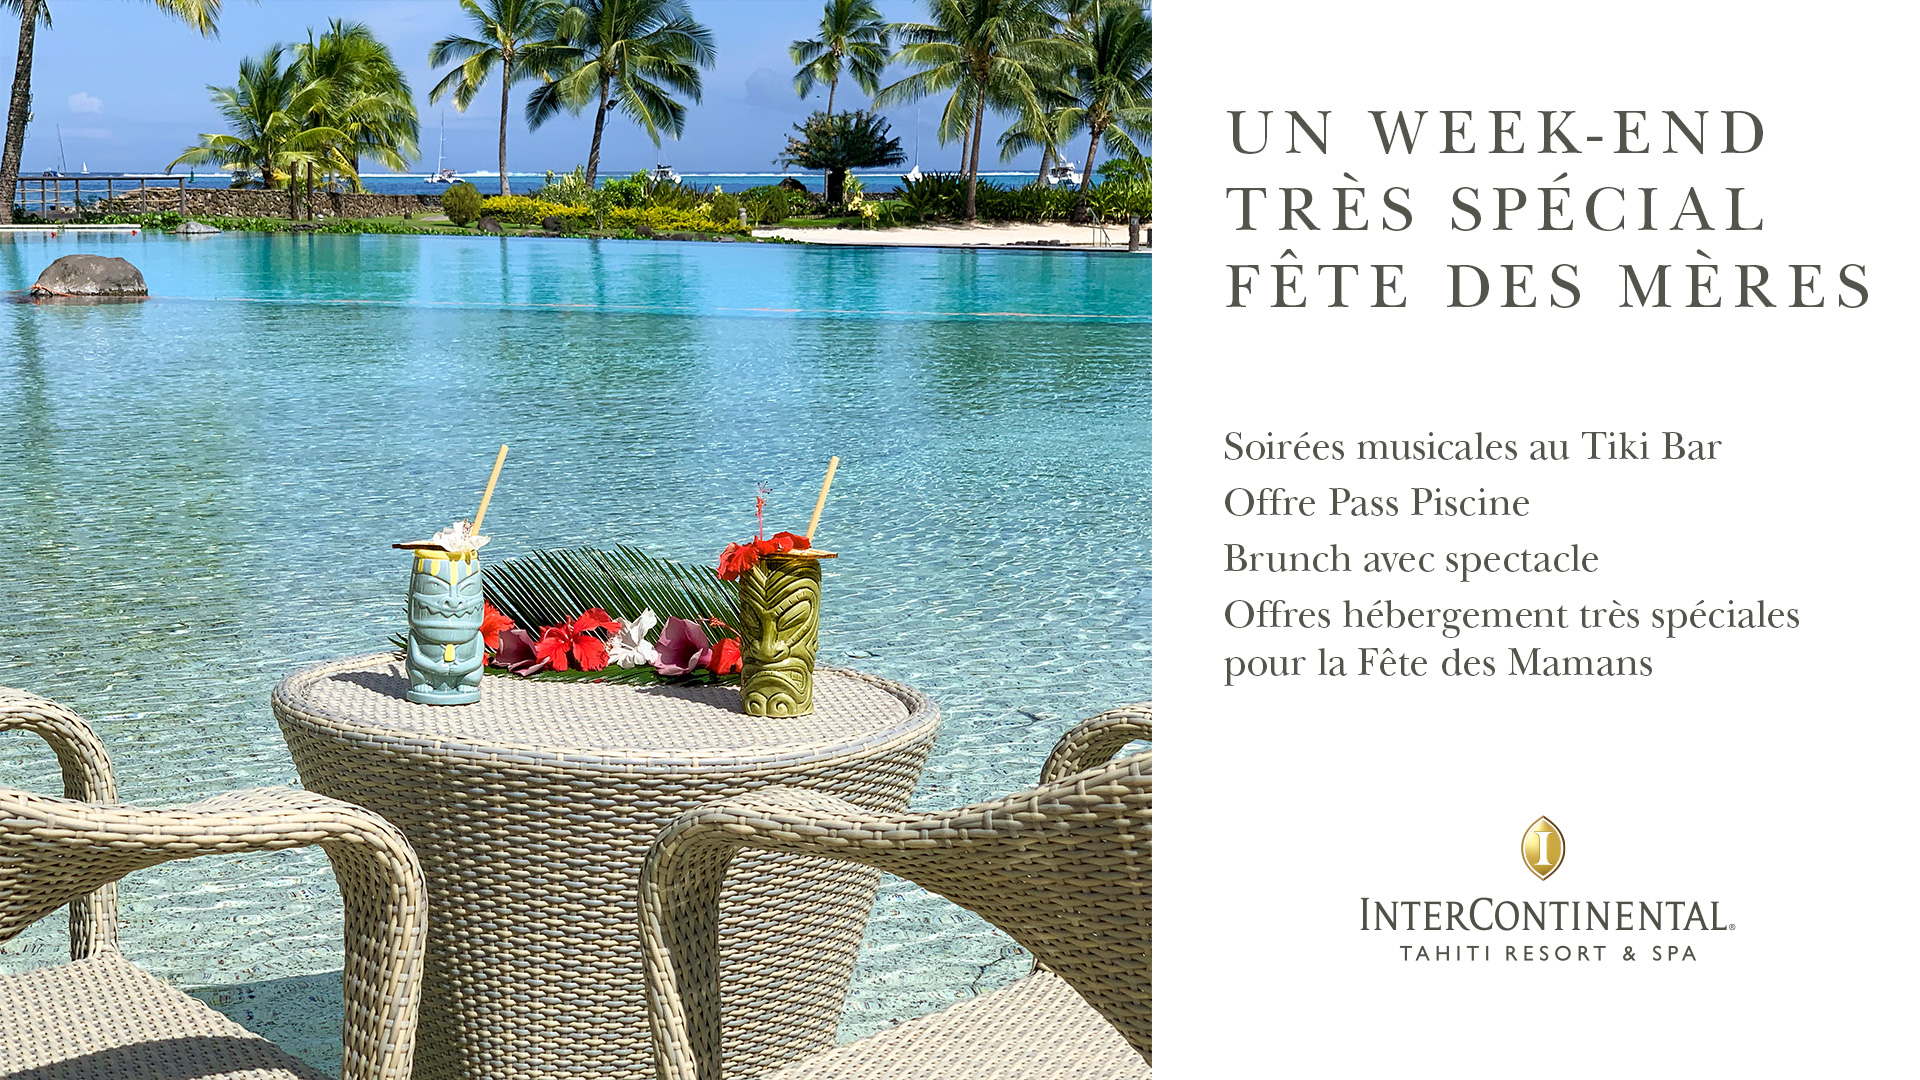 https://www.tahiti-infos.com/agenda/Week-end-TRES-Special-Fete-des-Meres_ae694657.html